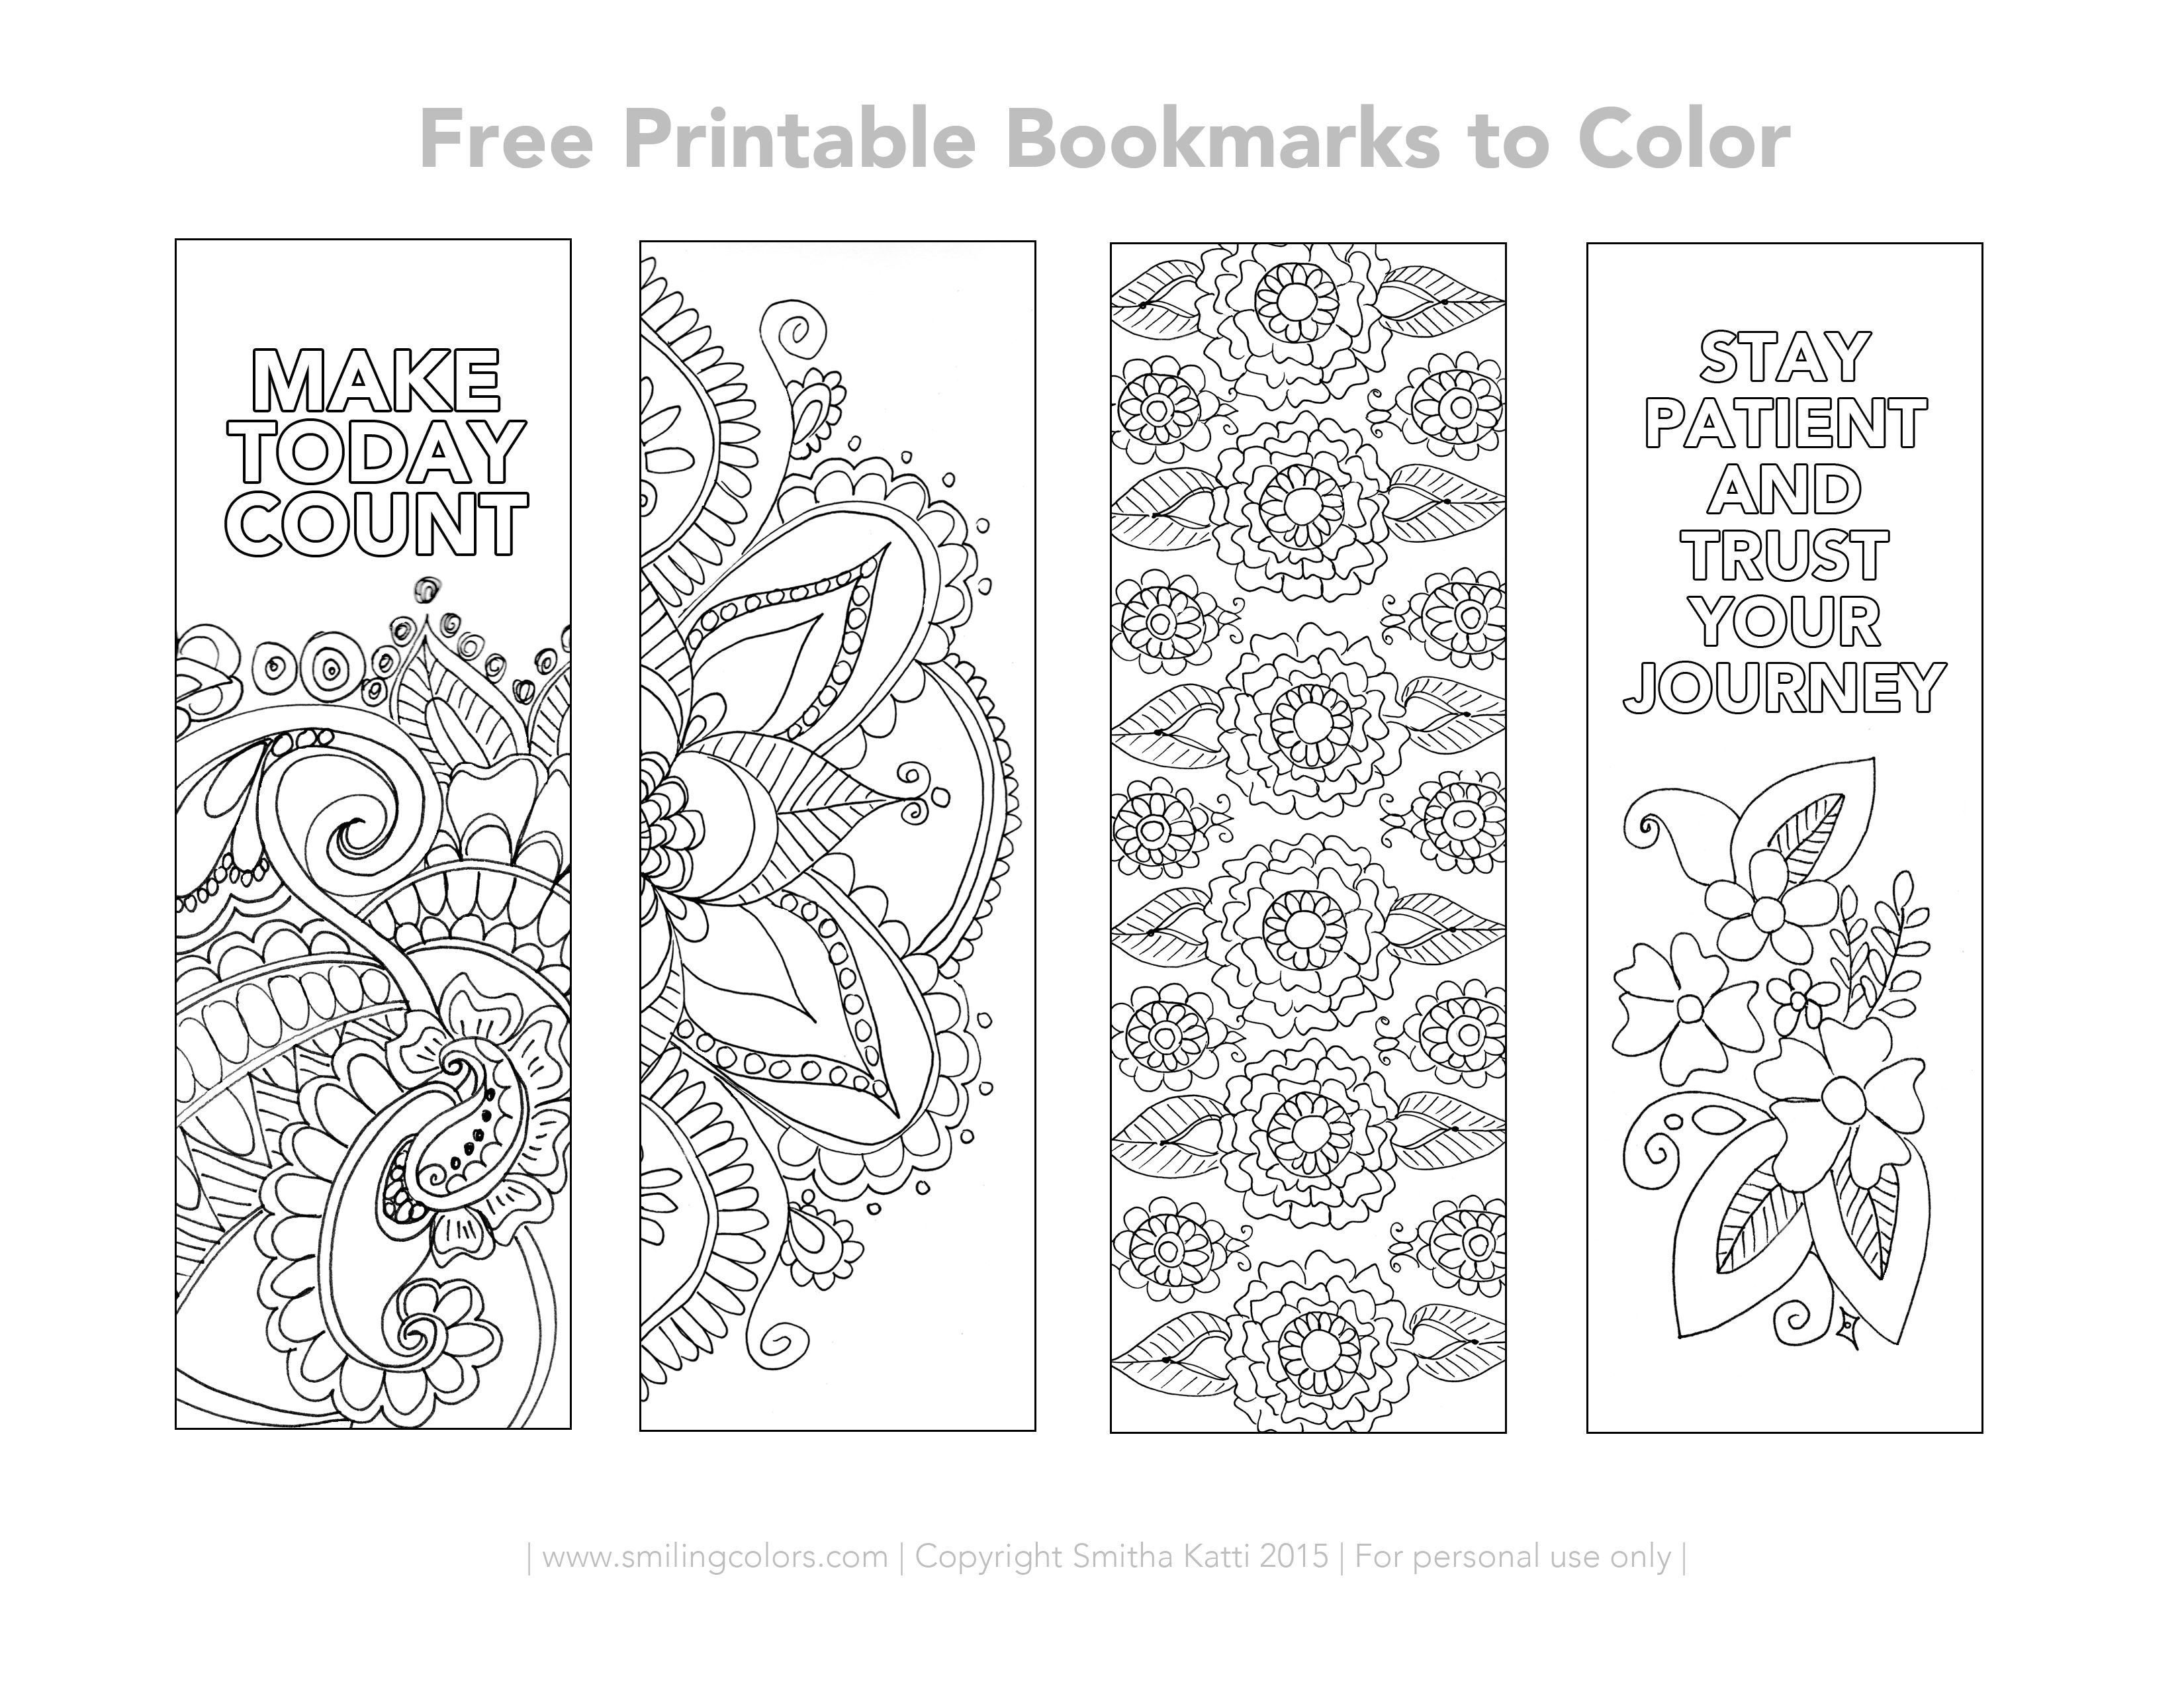 Free Printable Bookmarks To Color | Inspirational | Free Printable - Free Printable Spring Bookmarks